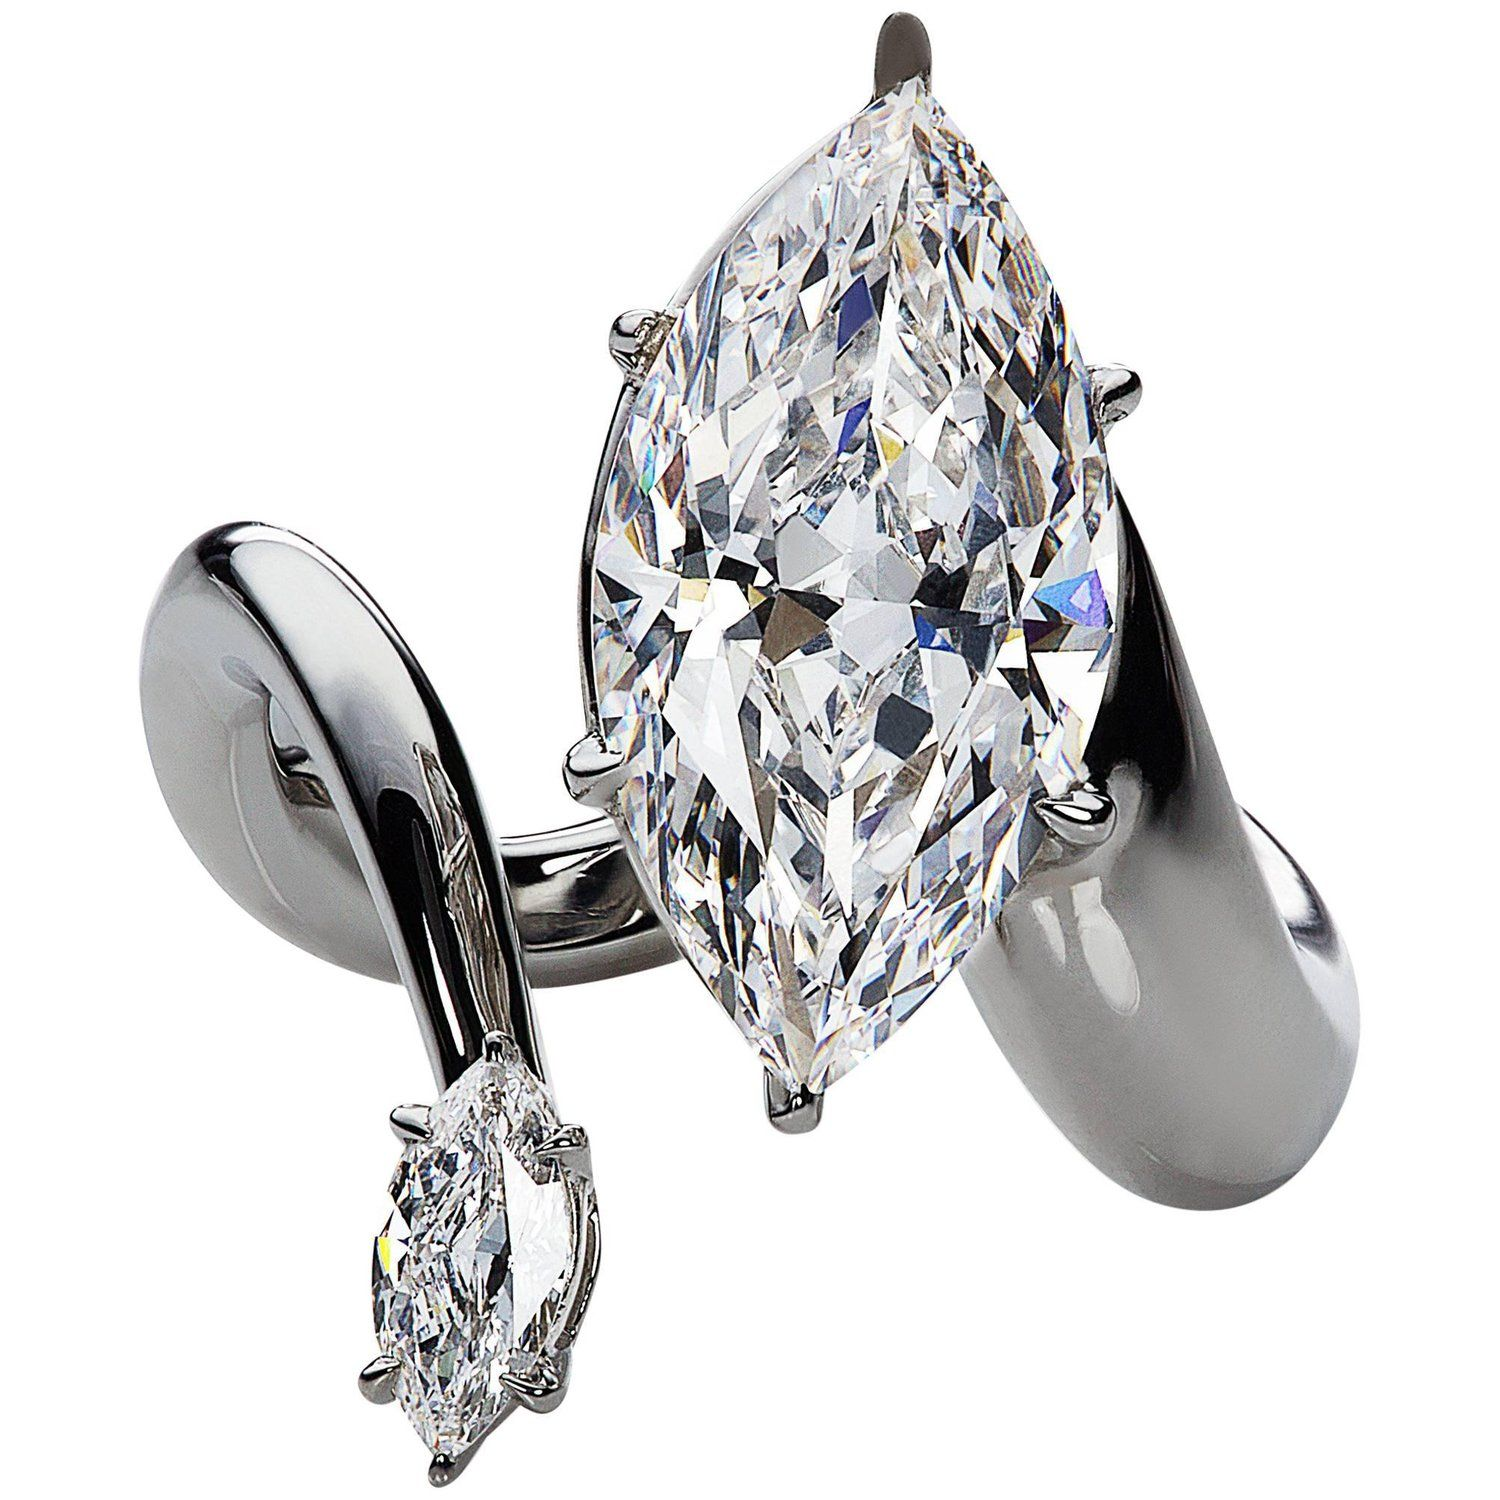 Debeers millenium gia certified carat marquise cut diamond and